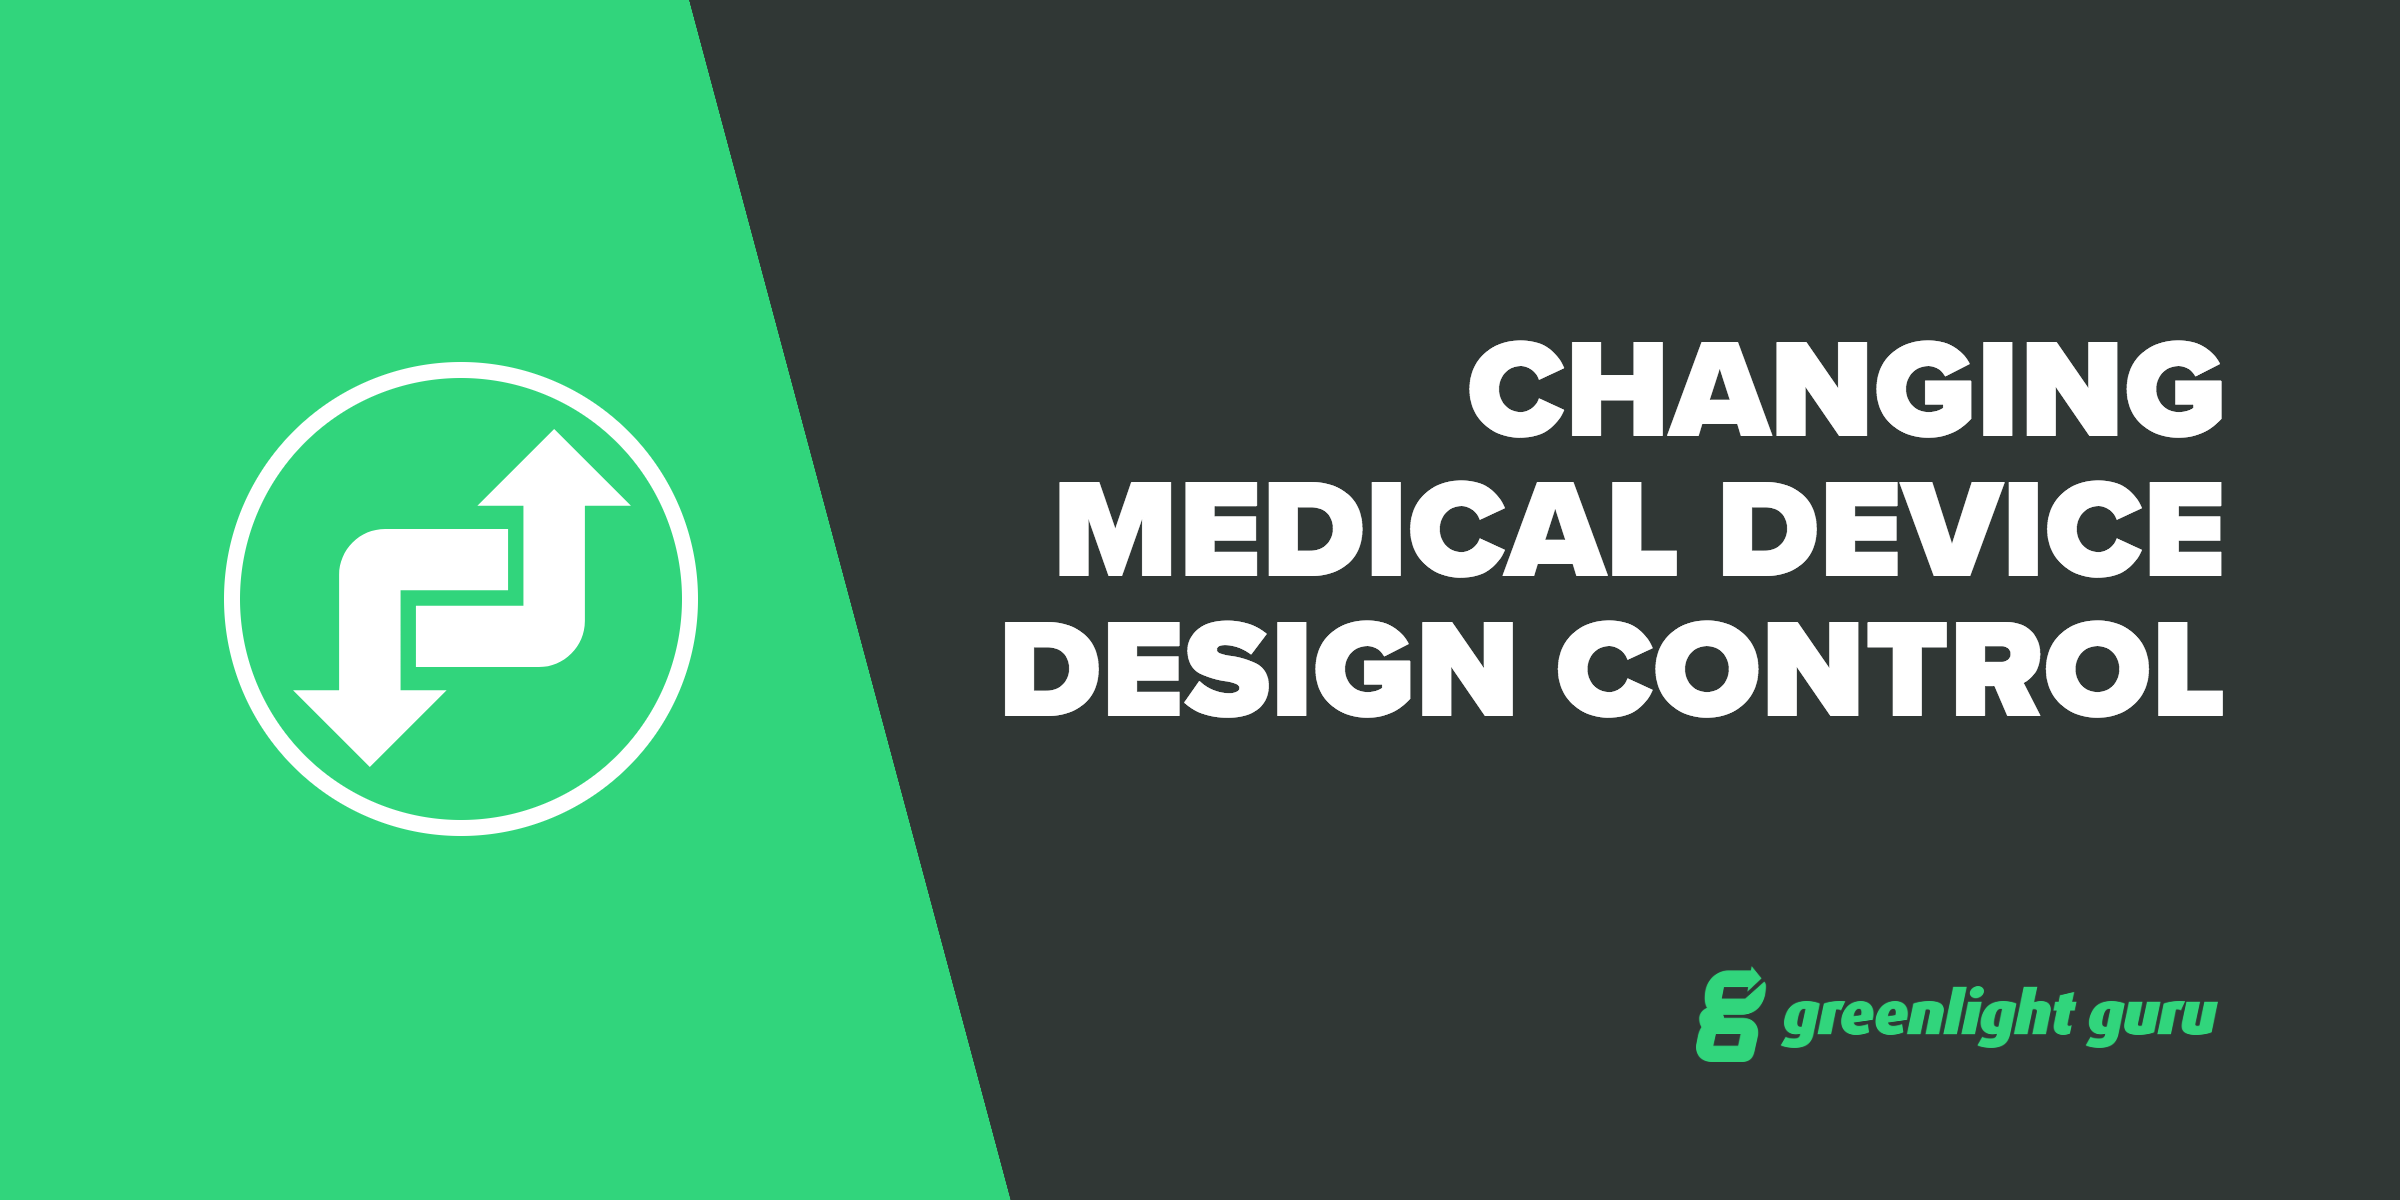 Changing Medical Device Design Control - Featured Image